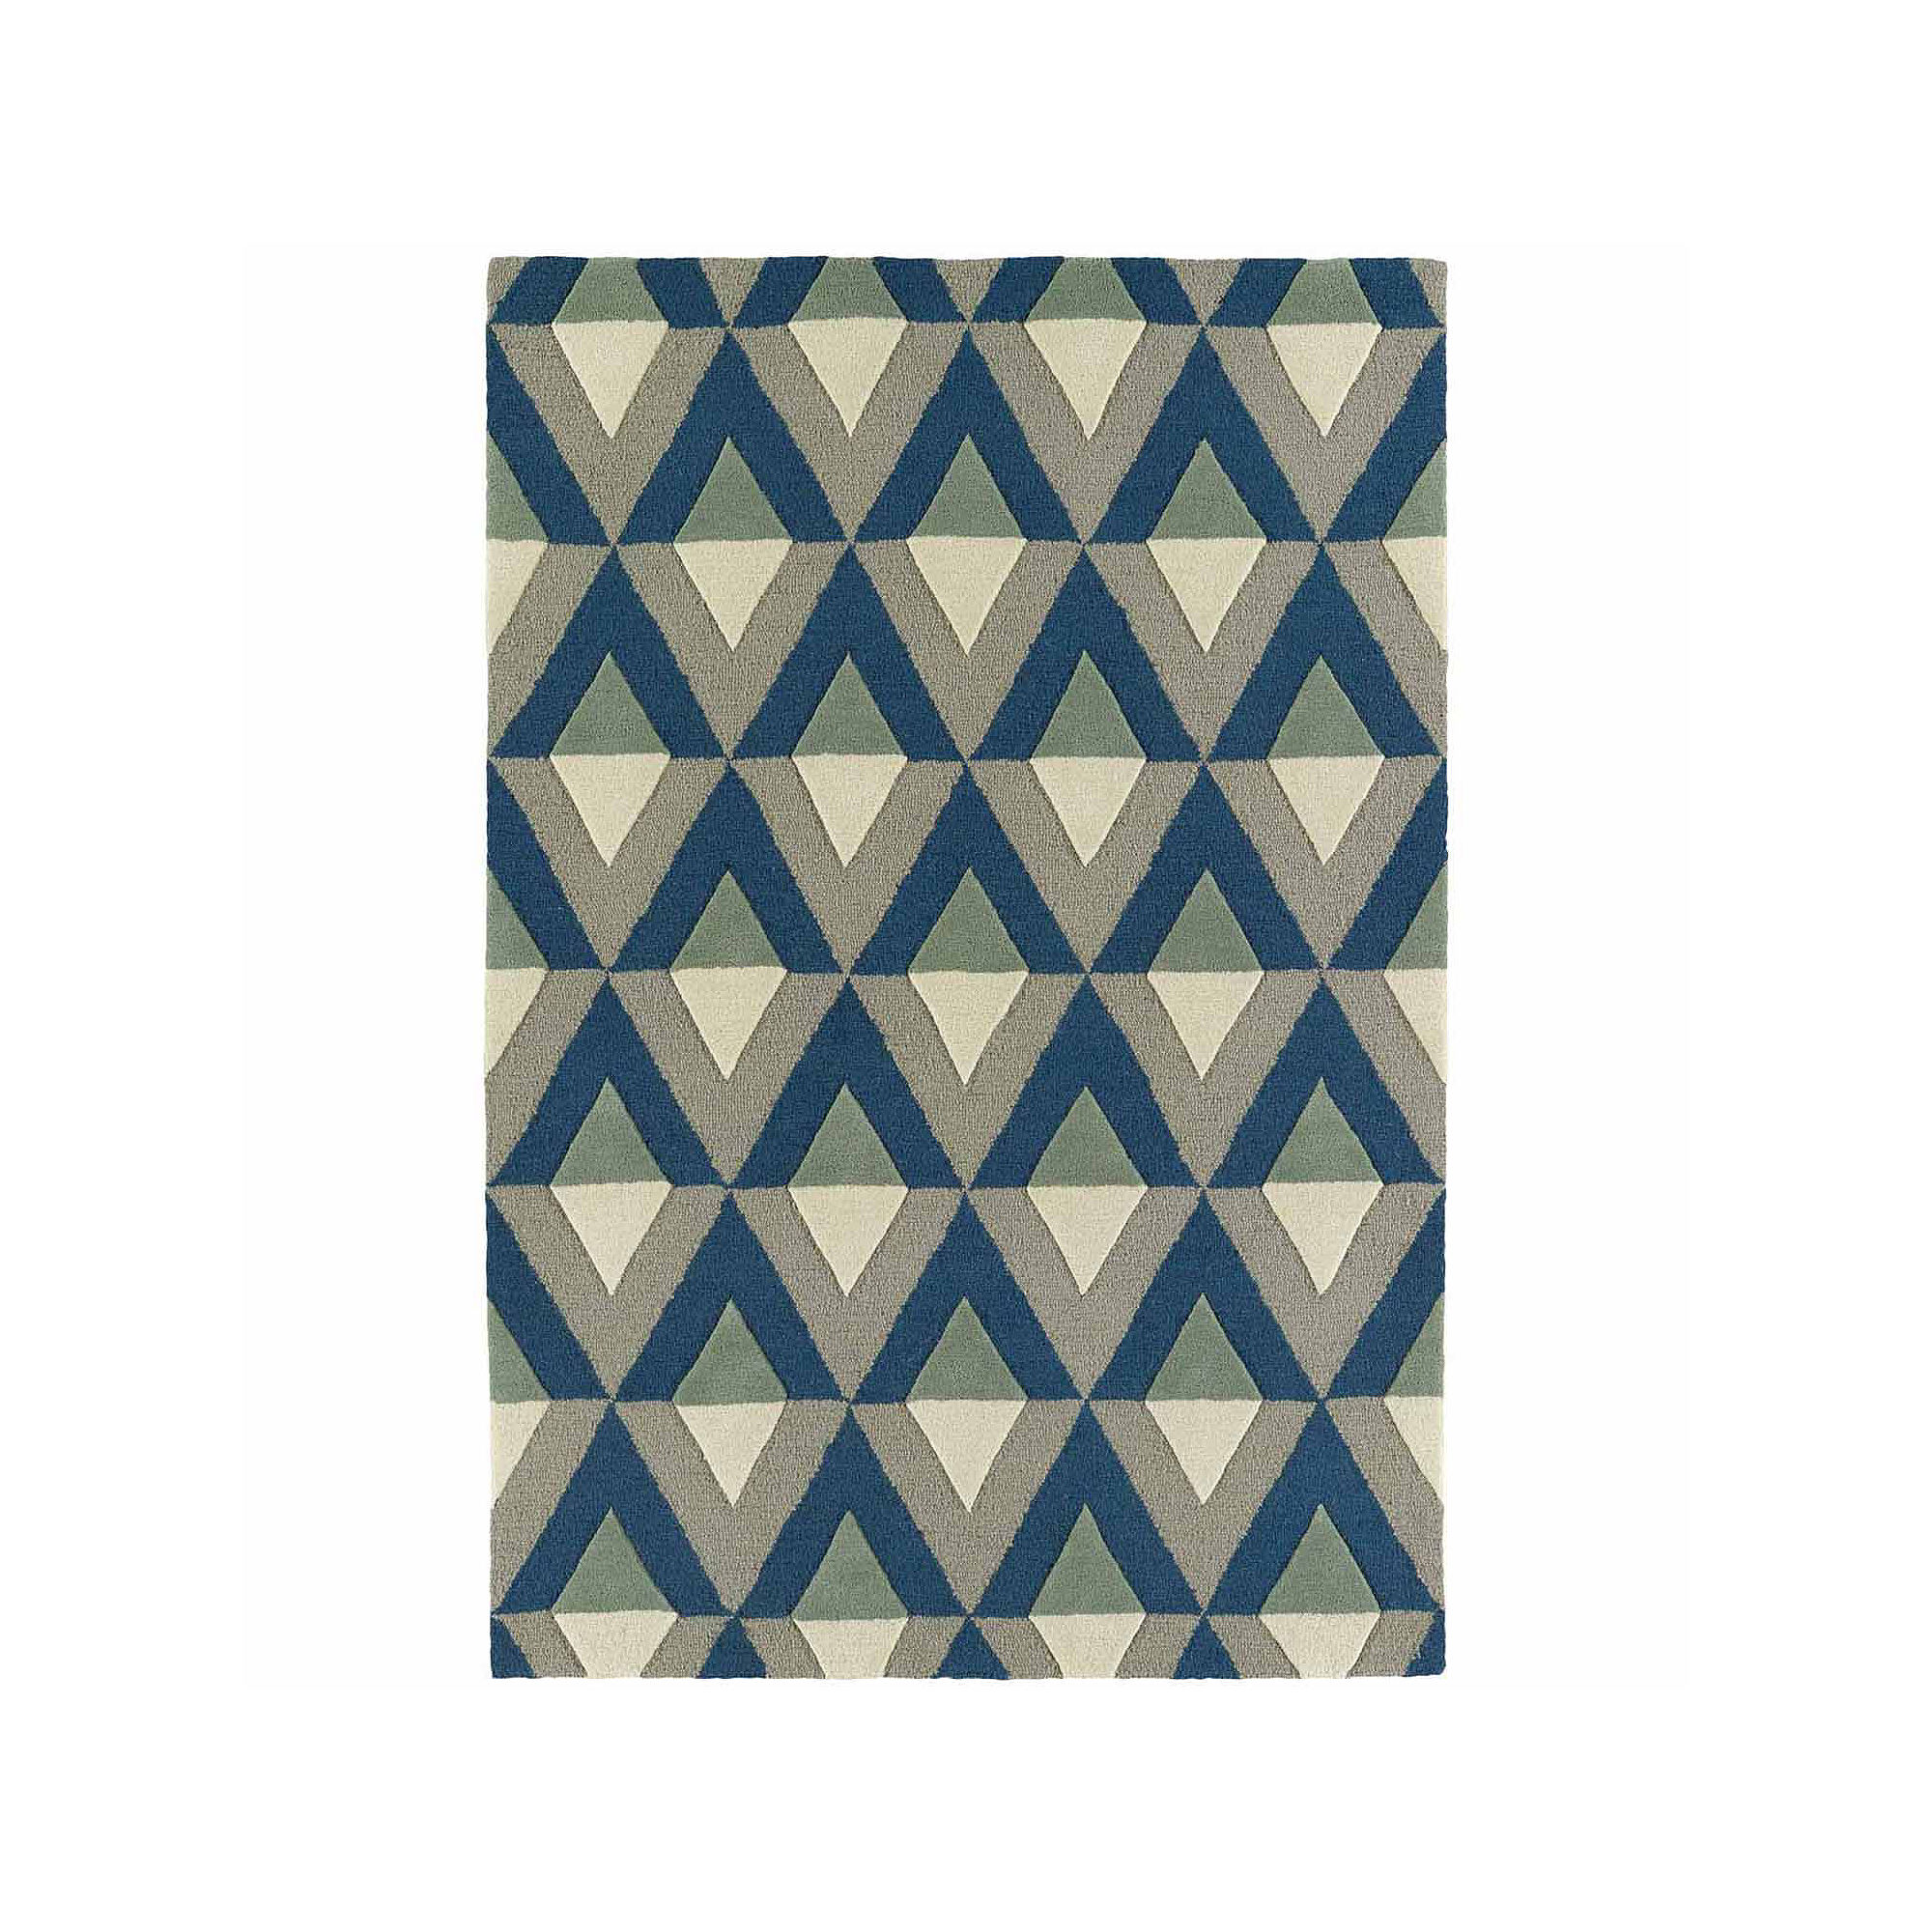 Kaleences Mid-Century Diamonds Rectangular Rug